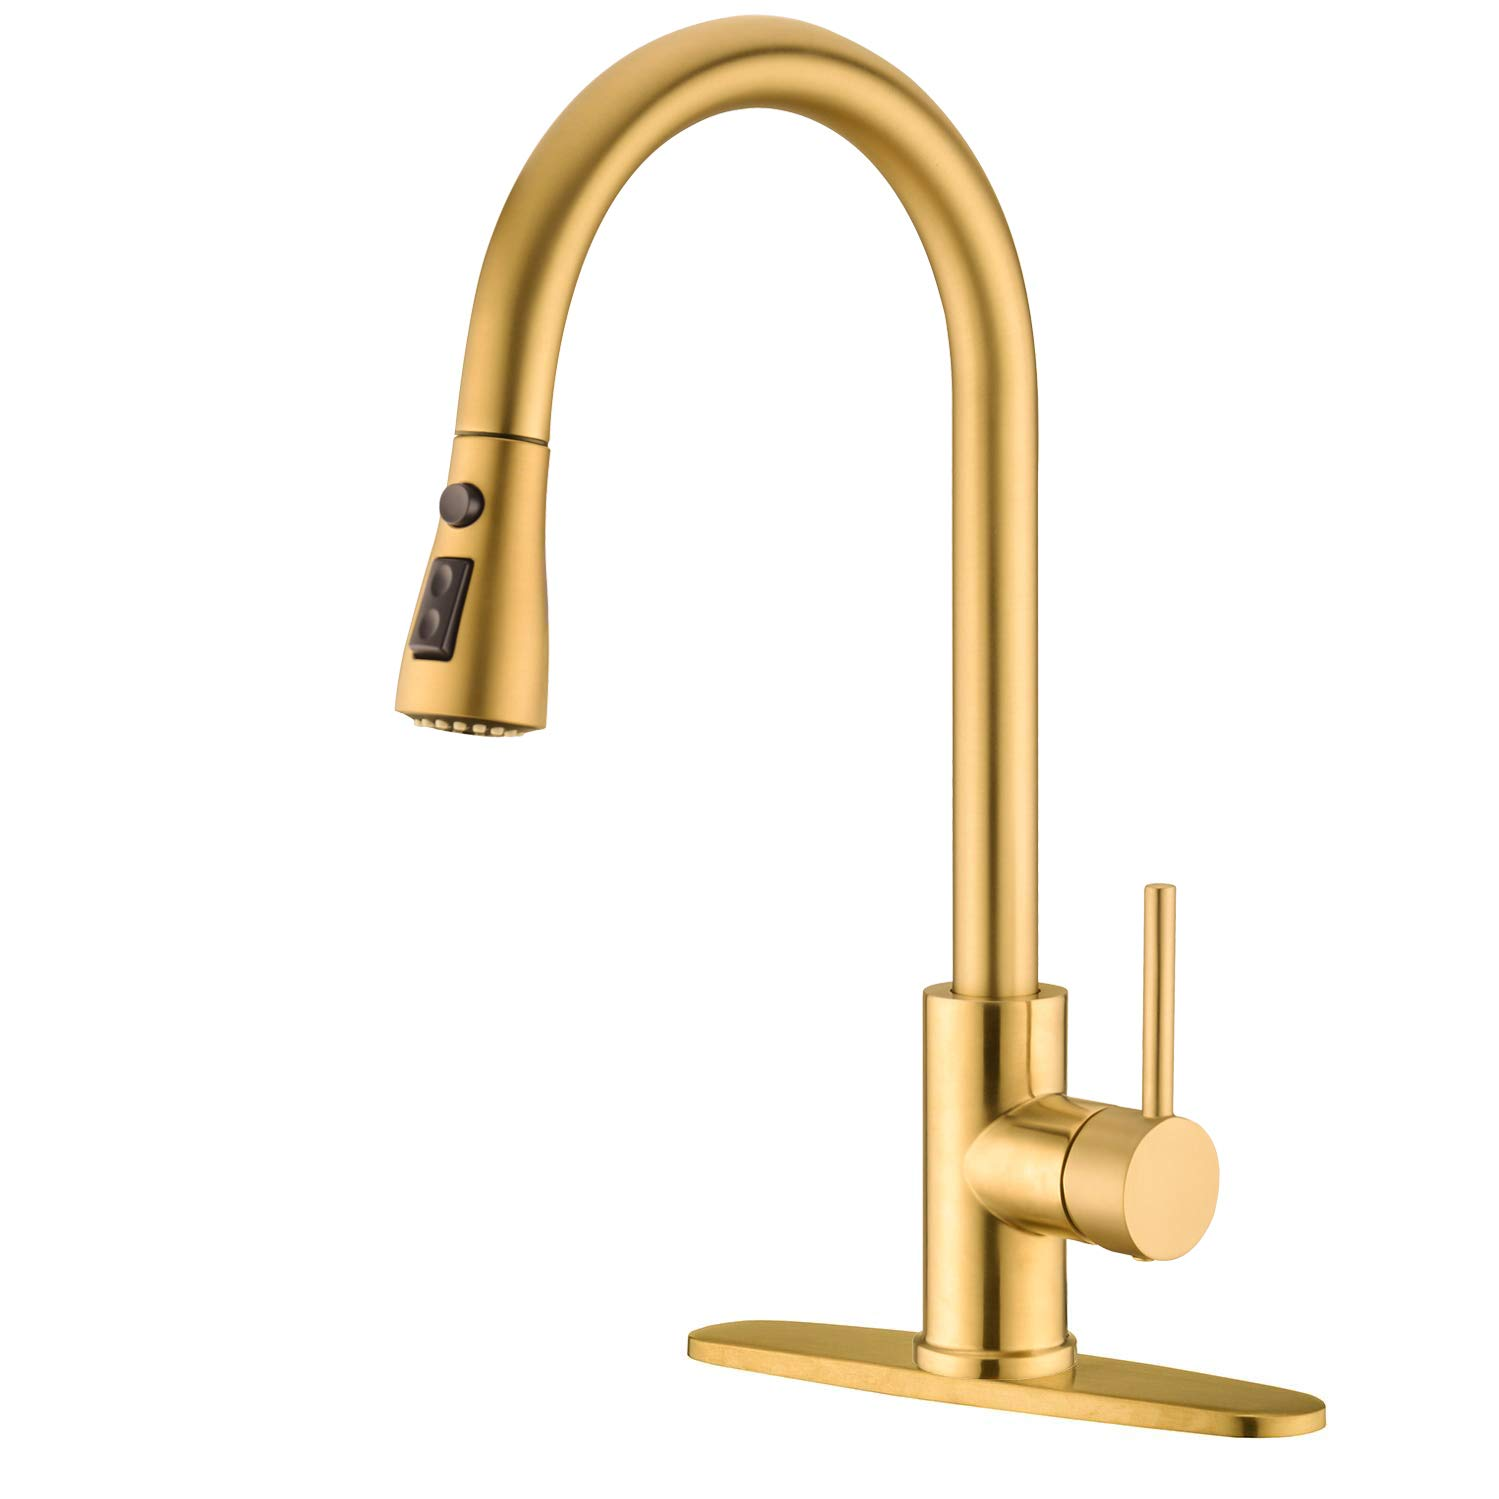 Gold Kitchen Sink Faucet with Pull Out Sprayer Delle Rosa Pause Function 2 Water Mode 360 Degree Swivel High Acr Single Handle Pre-rinse Kitchen Faucet